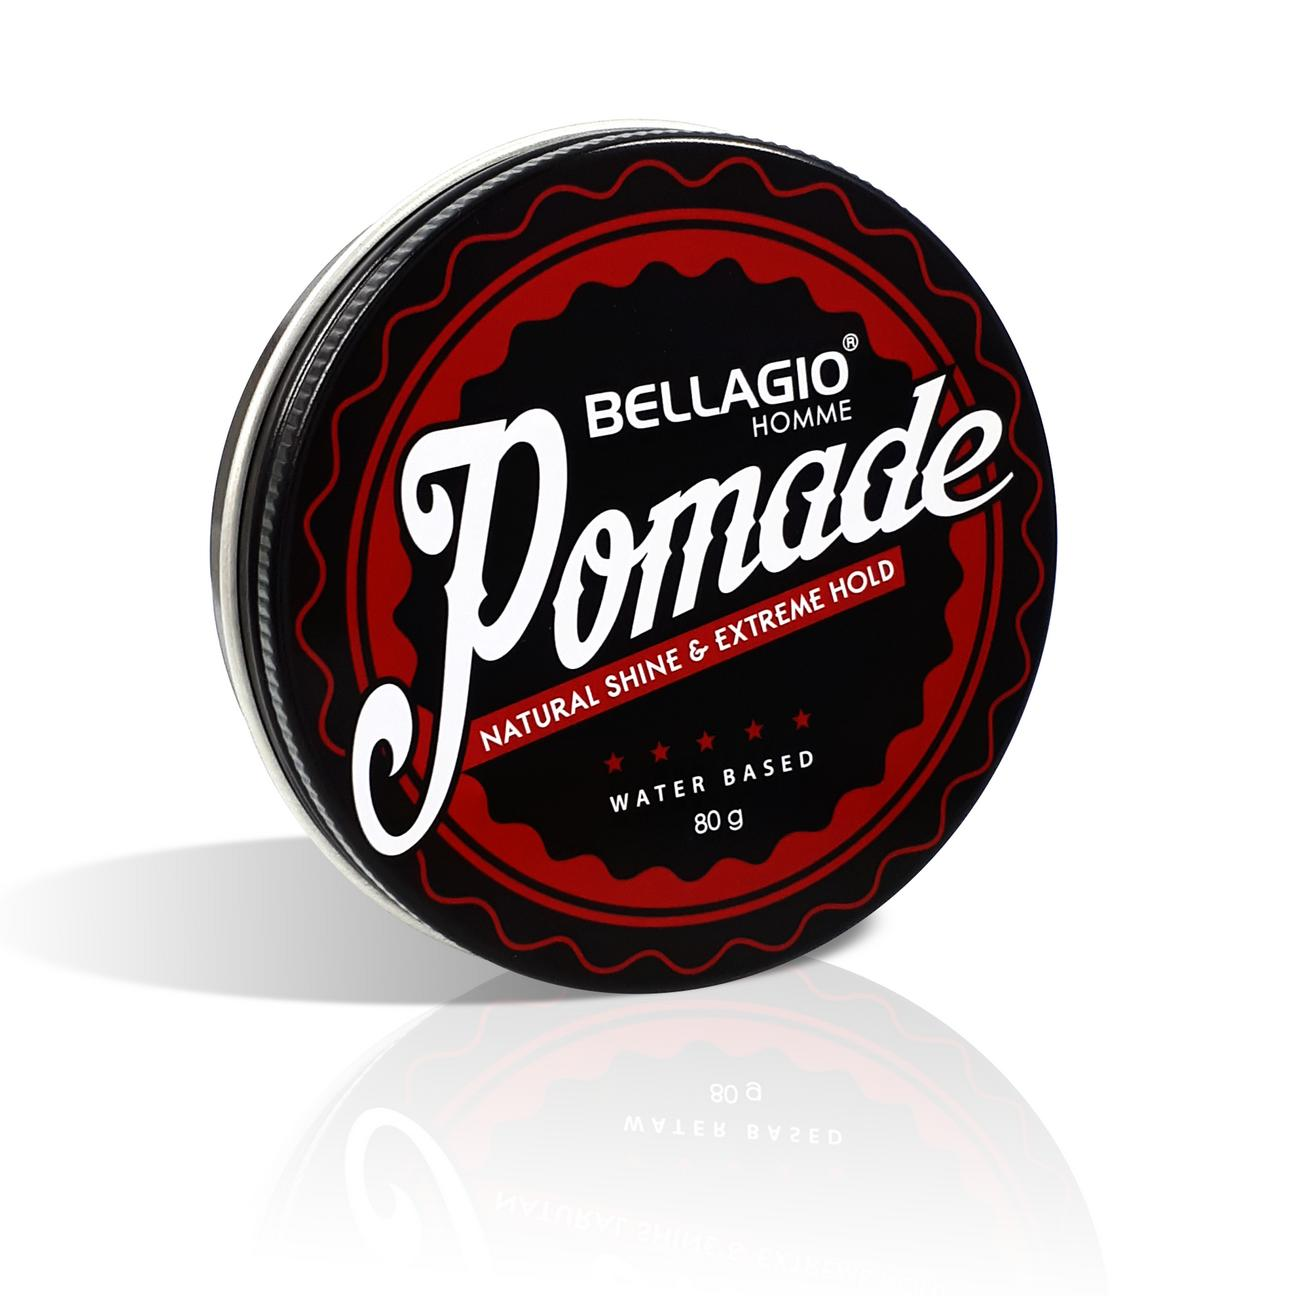 Jual Beli Bellagio Homme Natural Shine Extreme Hold Pomade Murray Edgewax